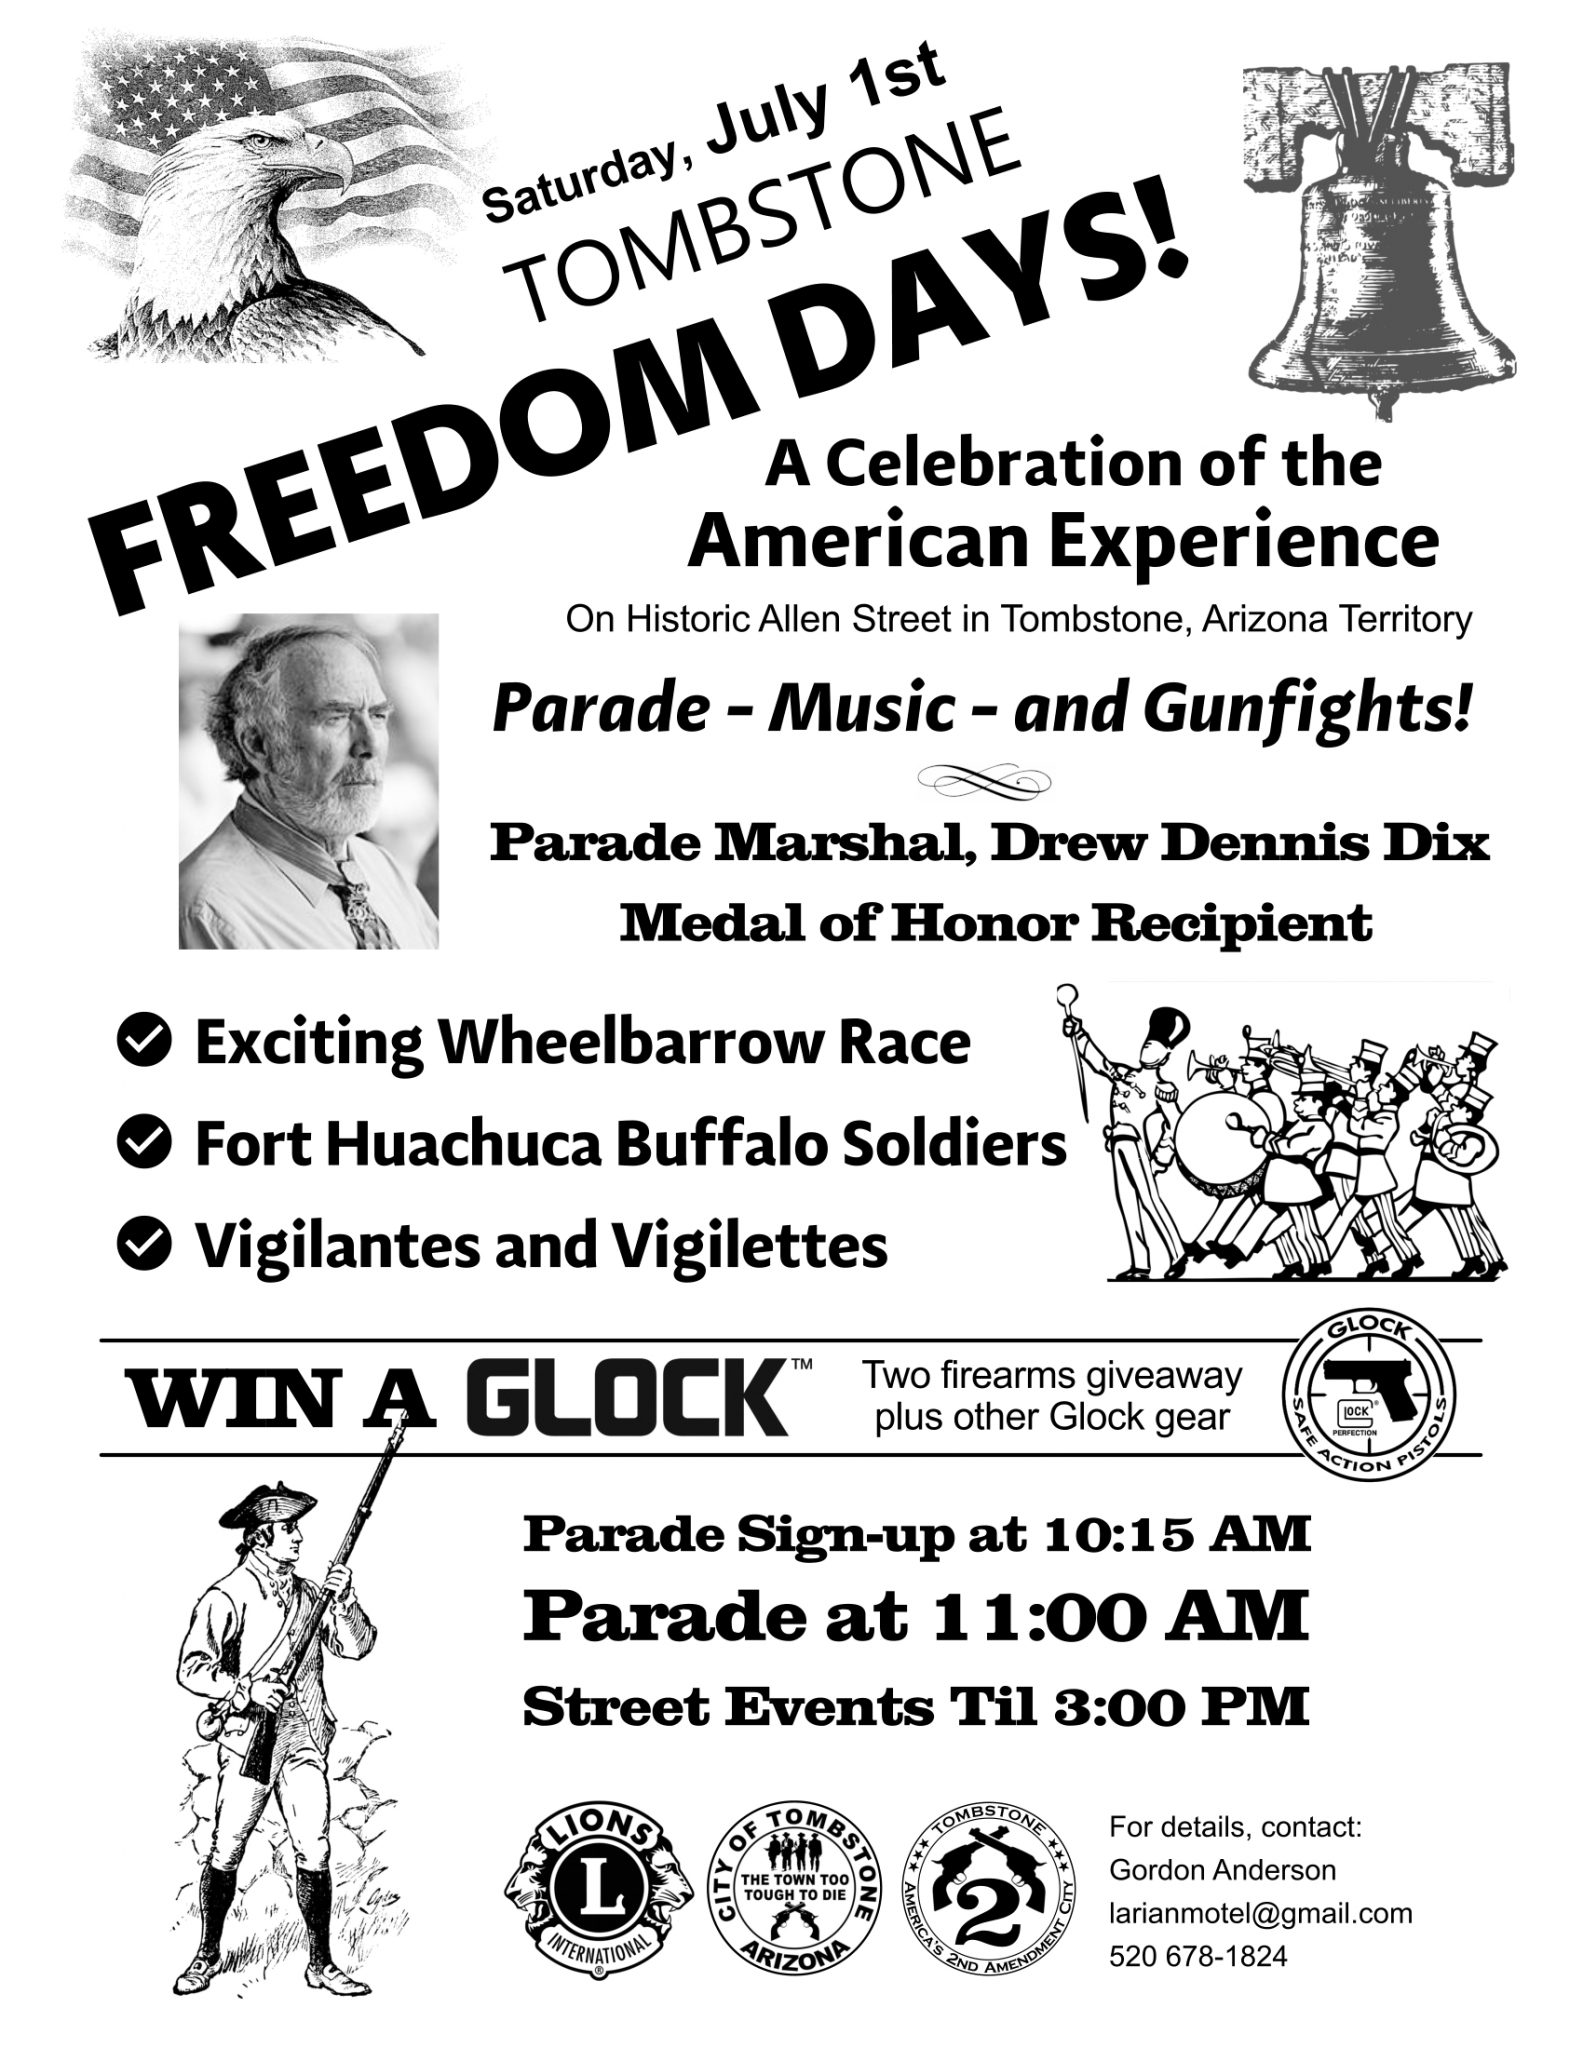 1st-july-freedom-days-tombstone-poster